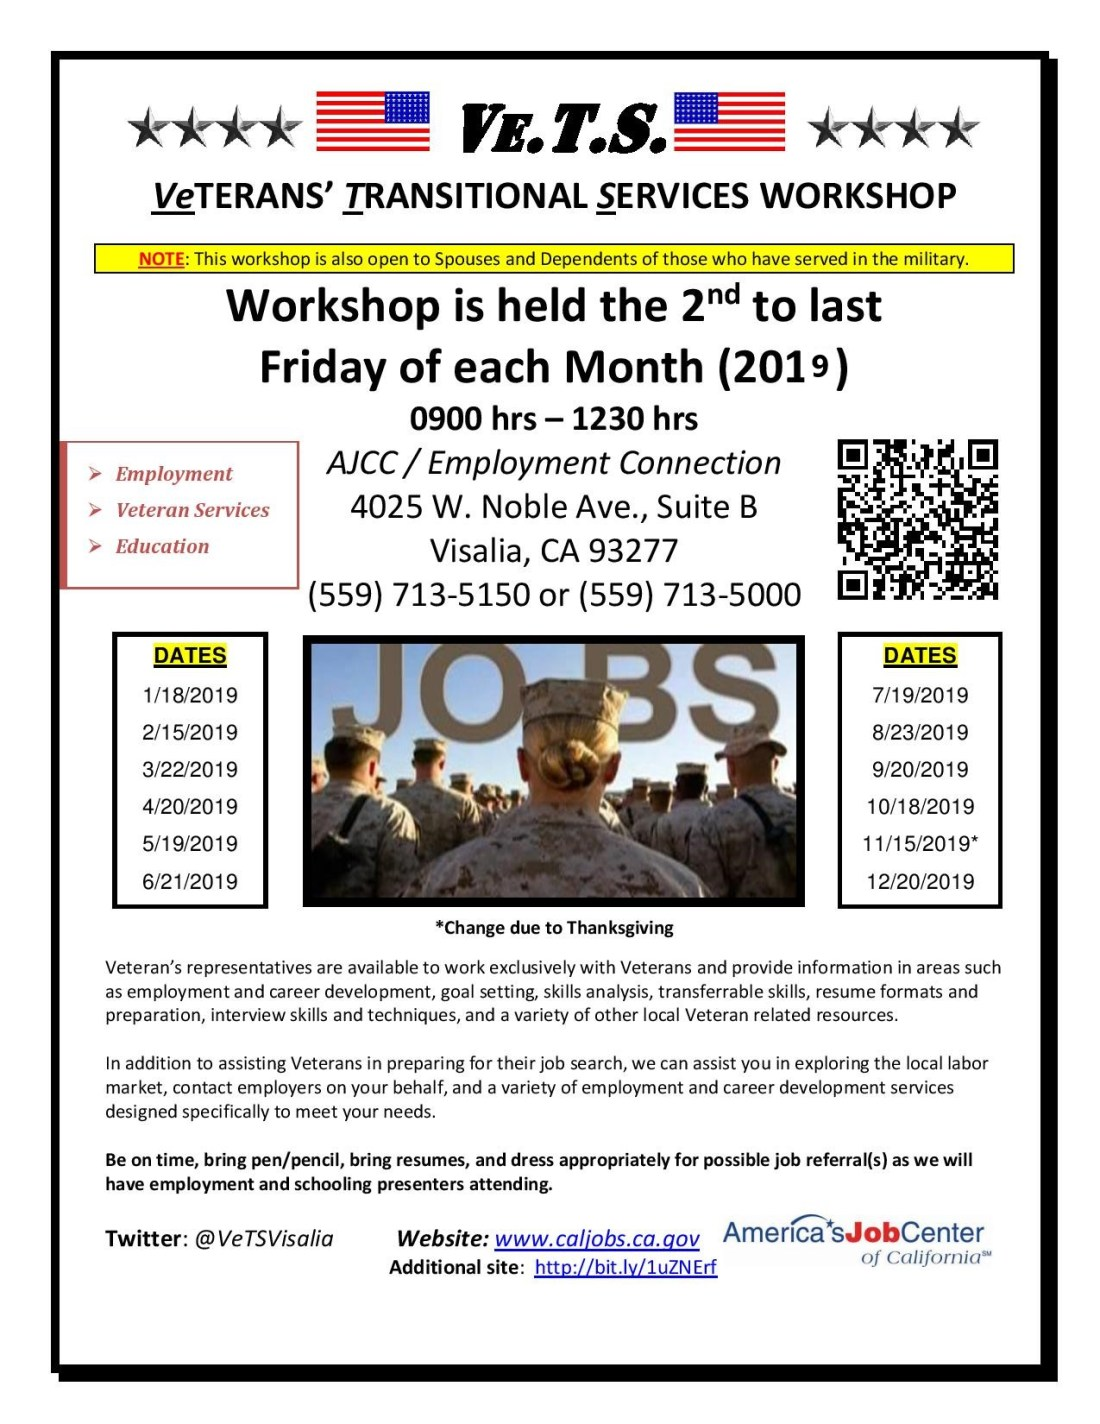 Visalia Veterans Transitional Services Workshop